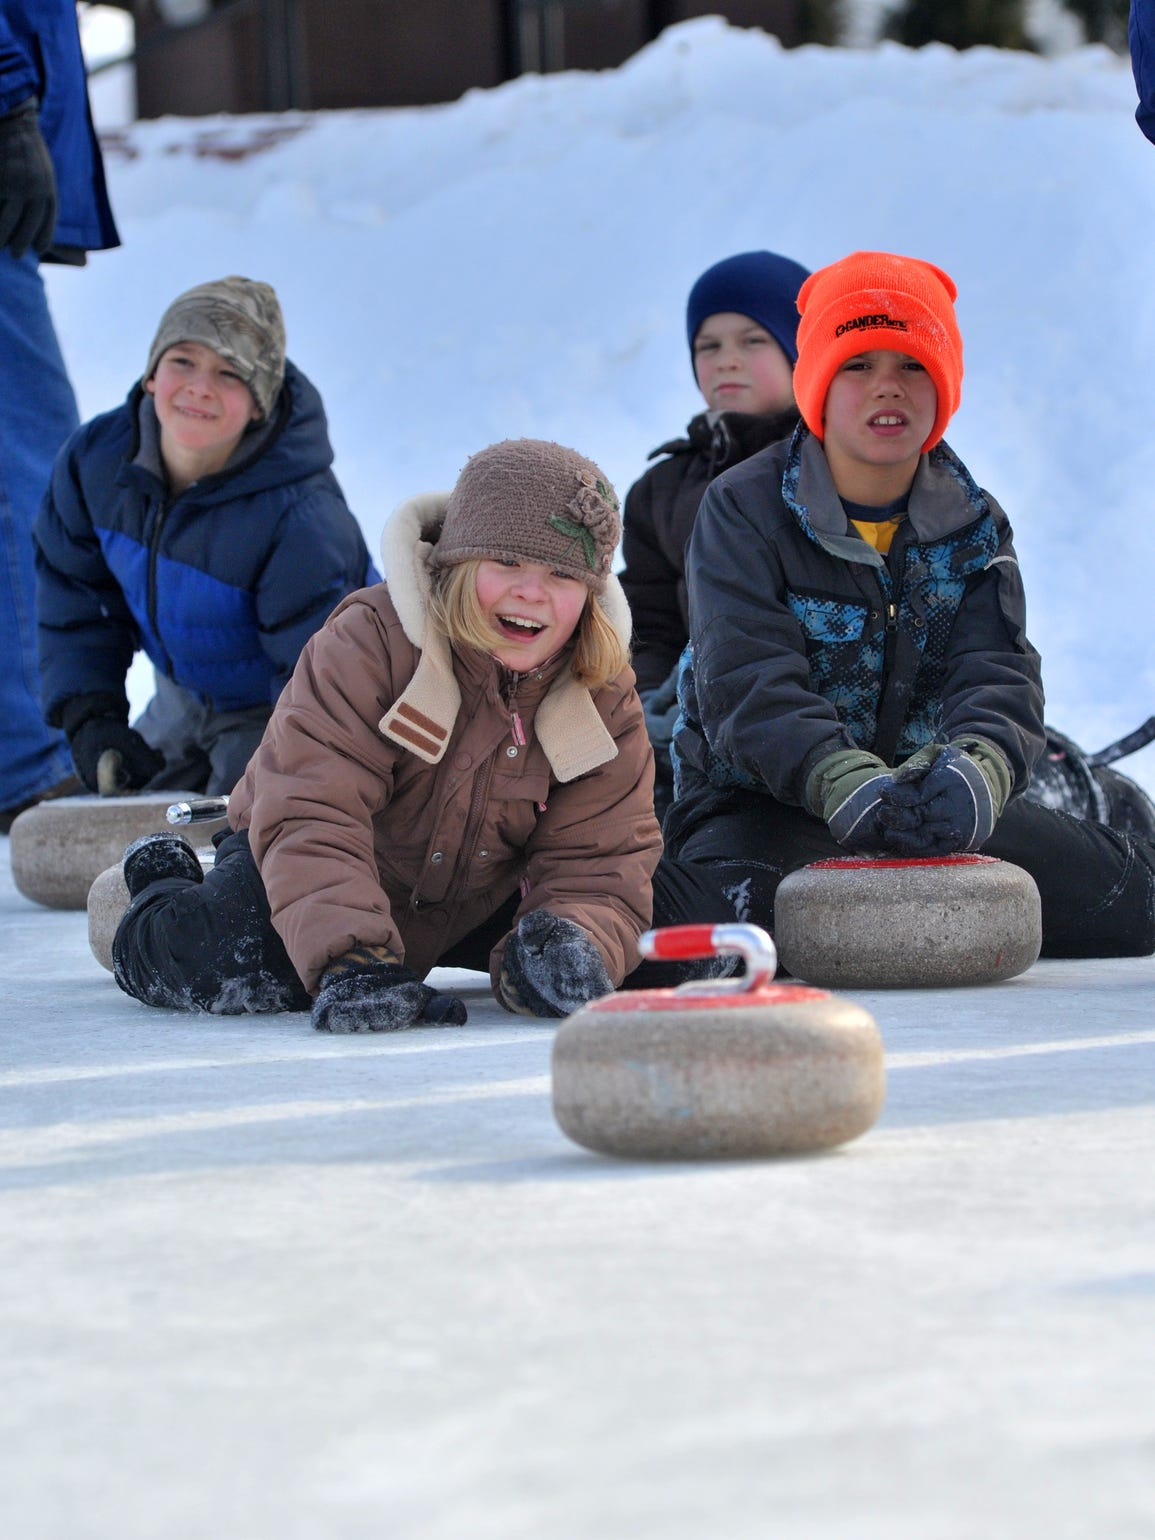 Claire Butalla of Wausau tries curling while her cousin